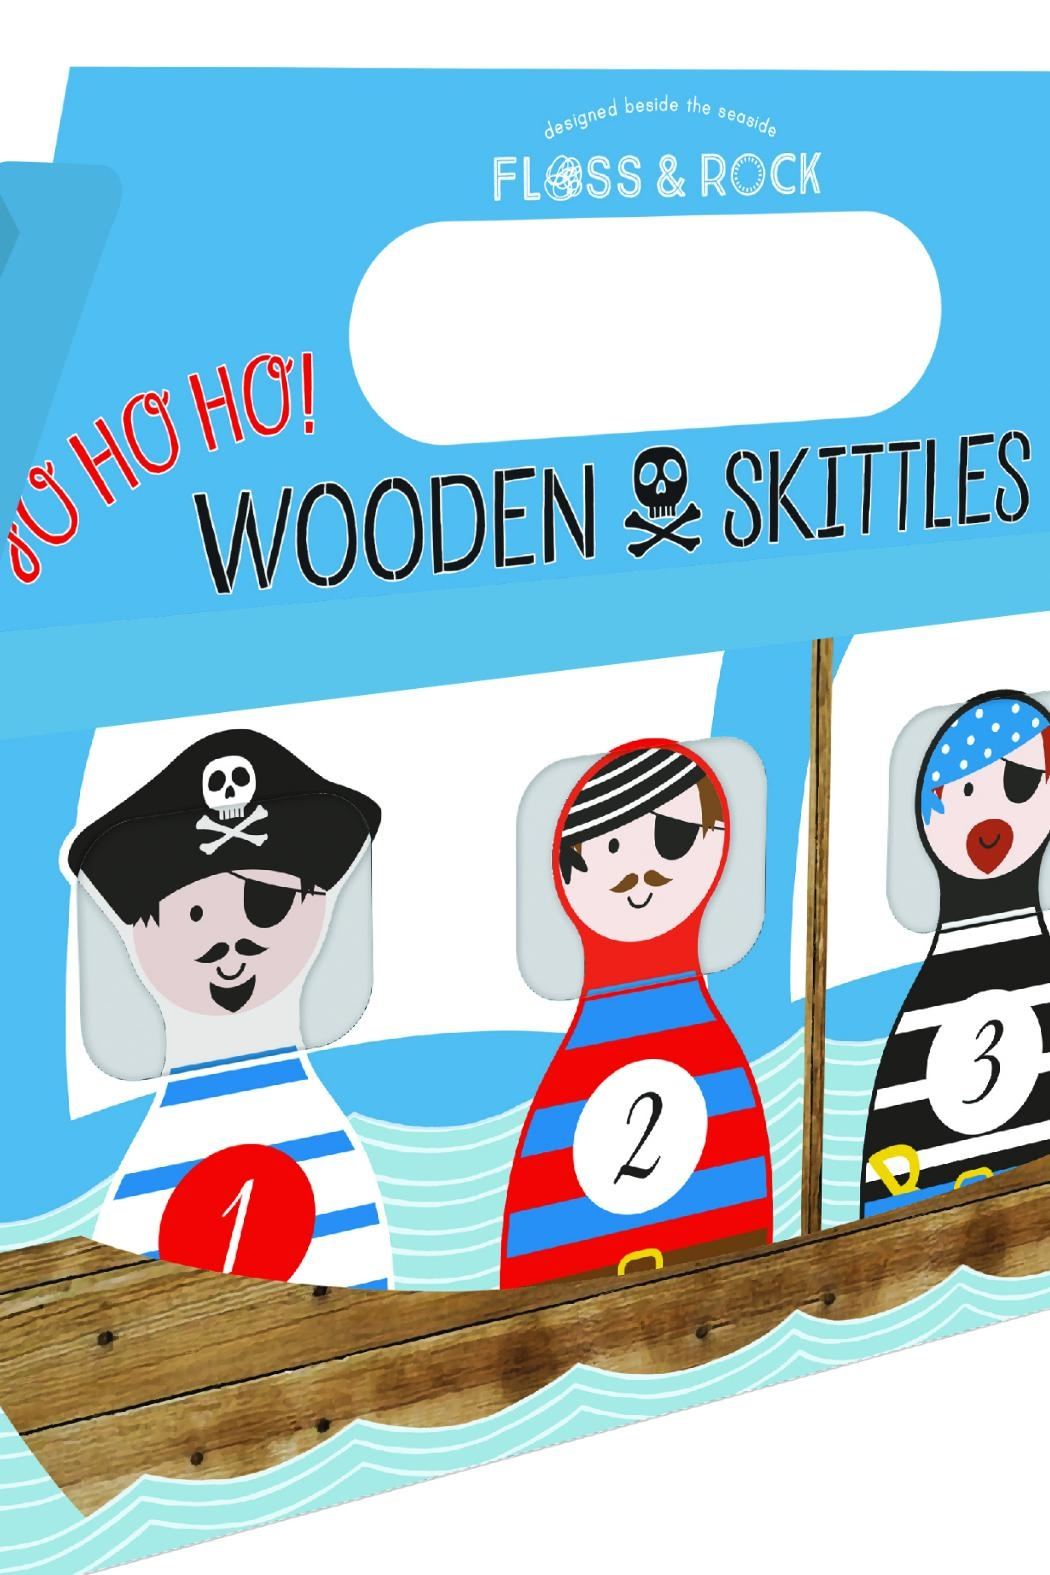 FLOSS & ROCK Wooden Pirate Skittles - Main Image